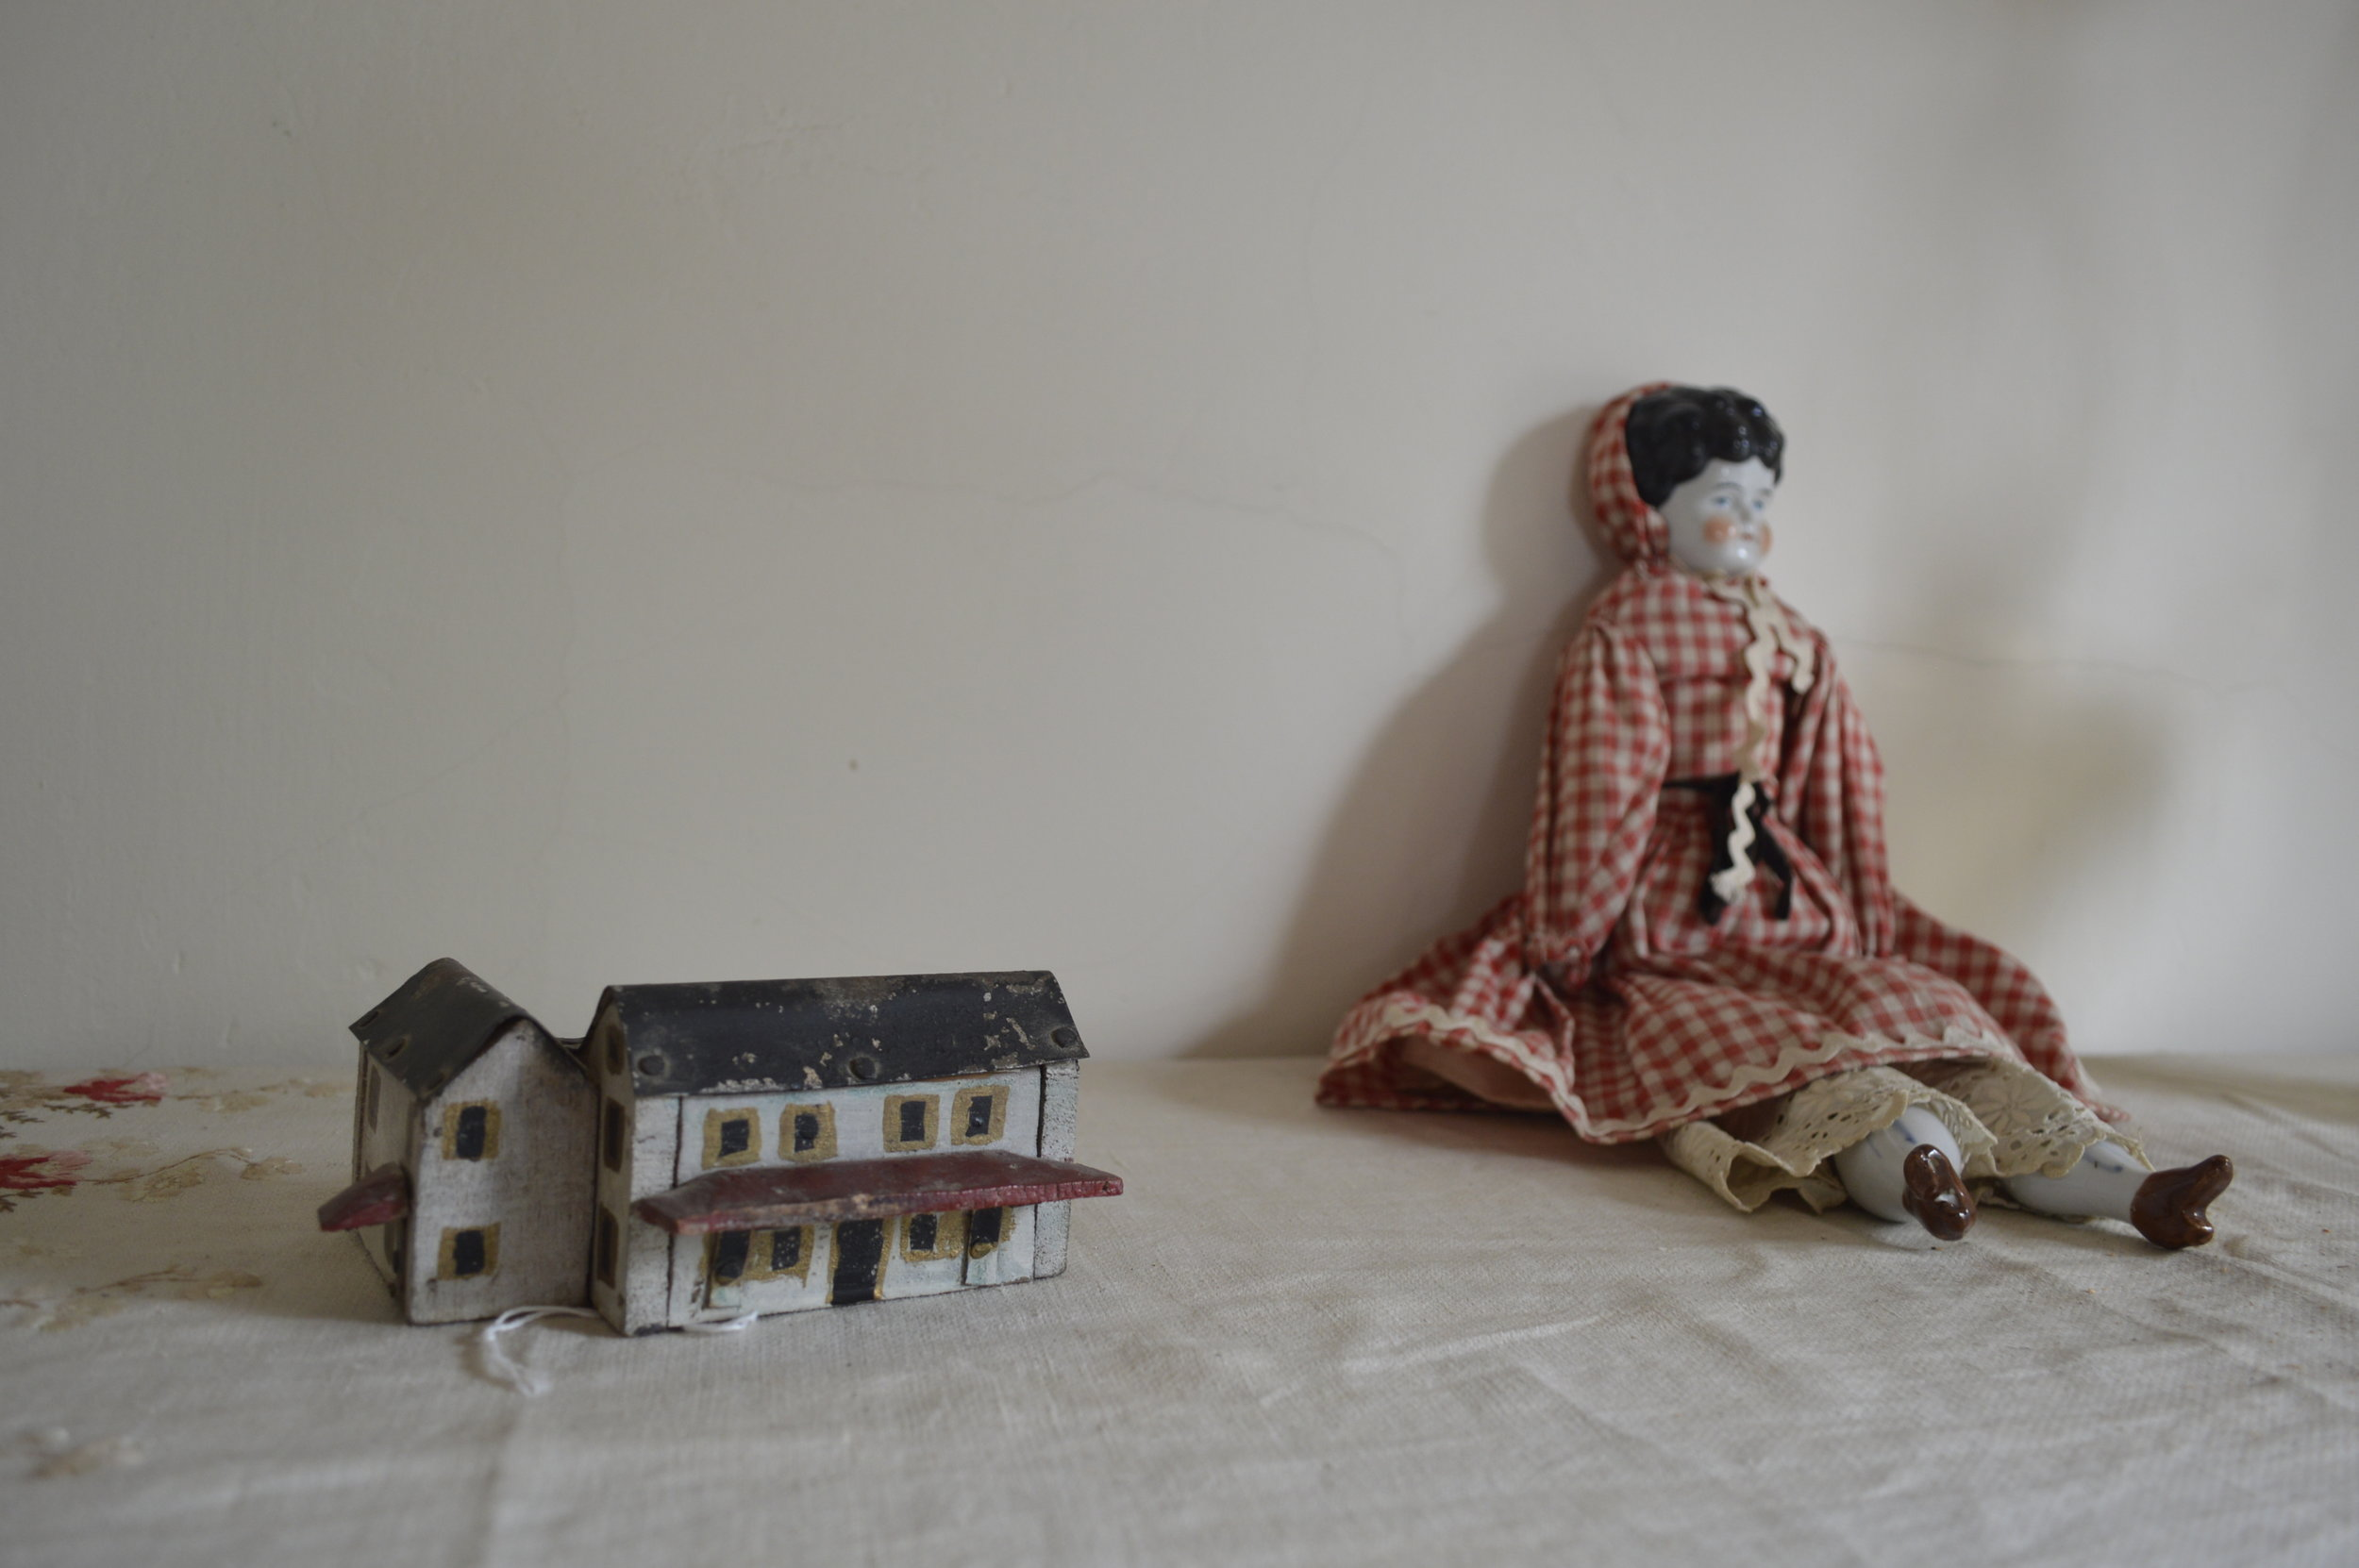 The small model of the house was made by Oliver Hyatt.